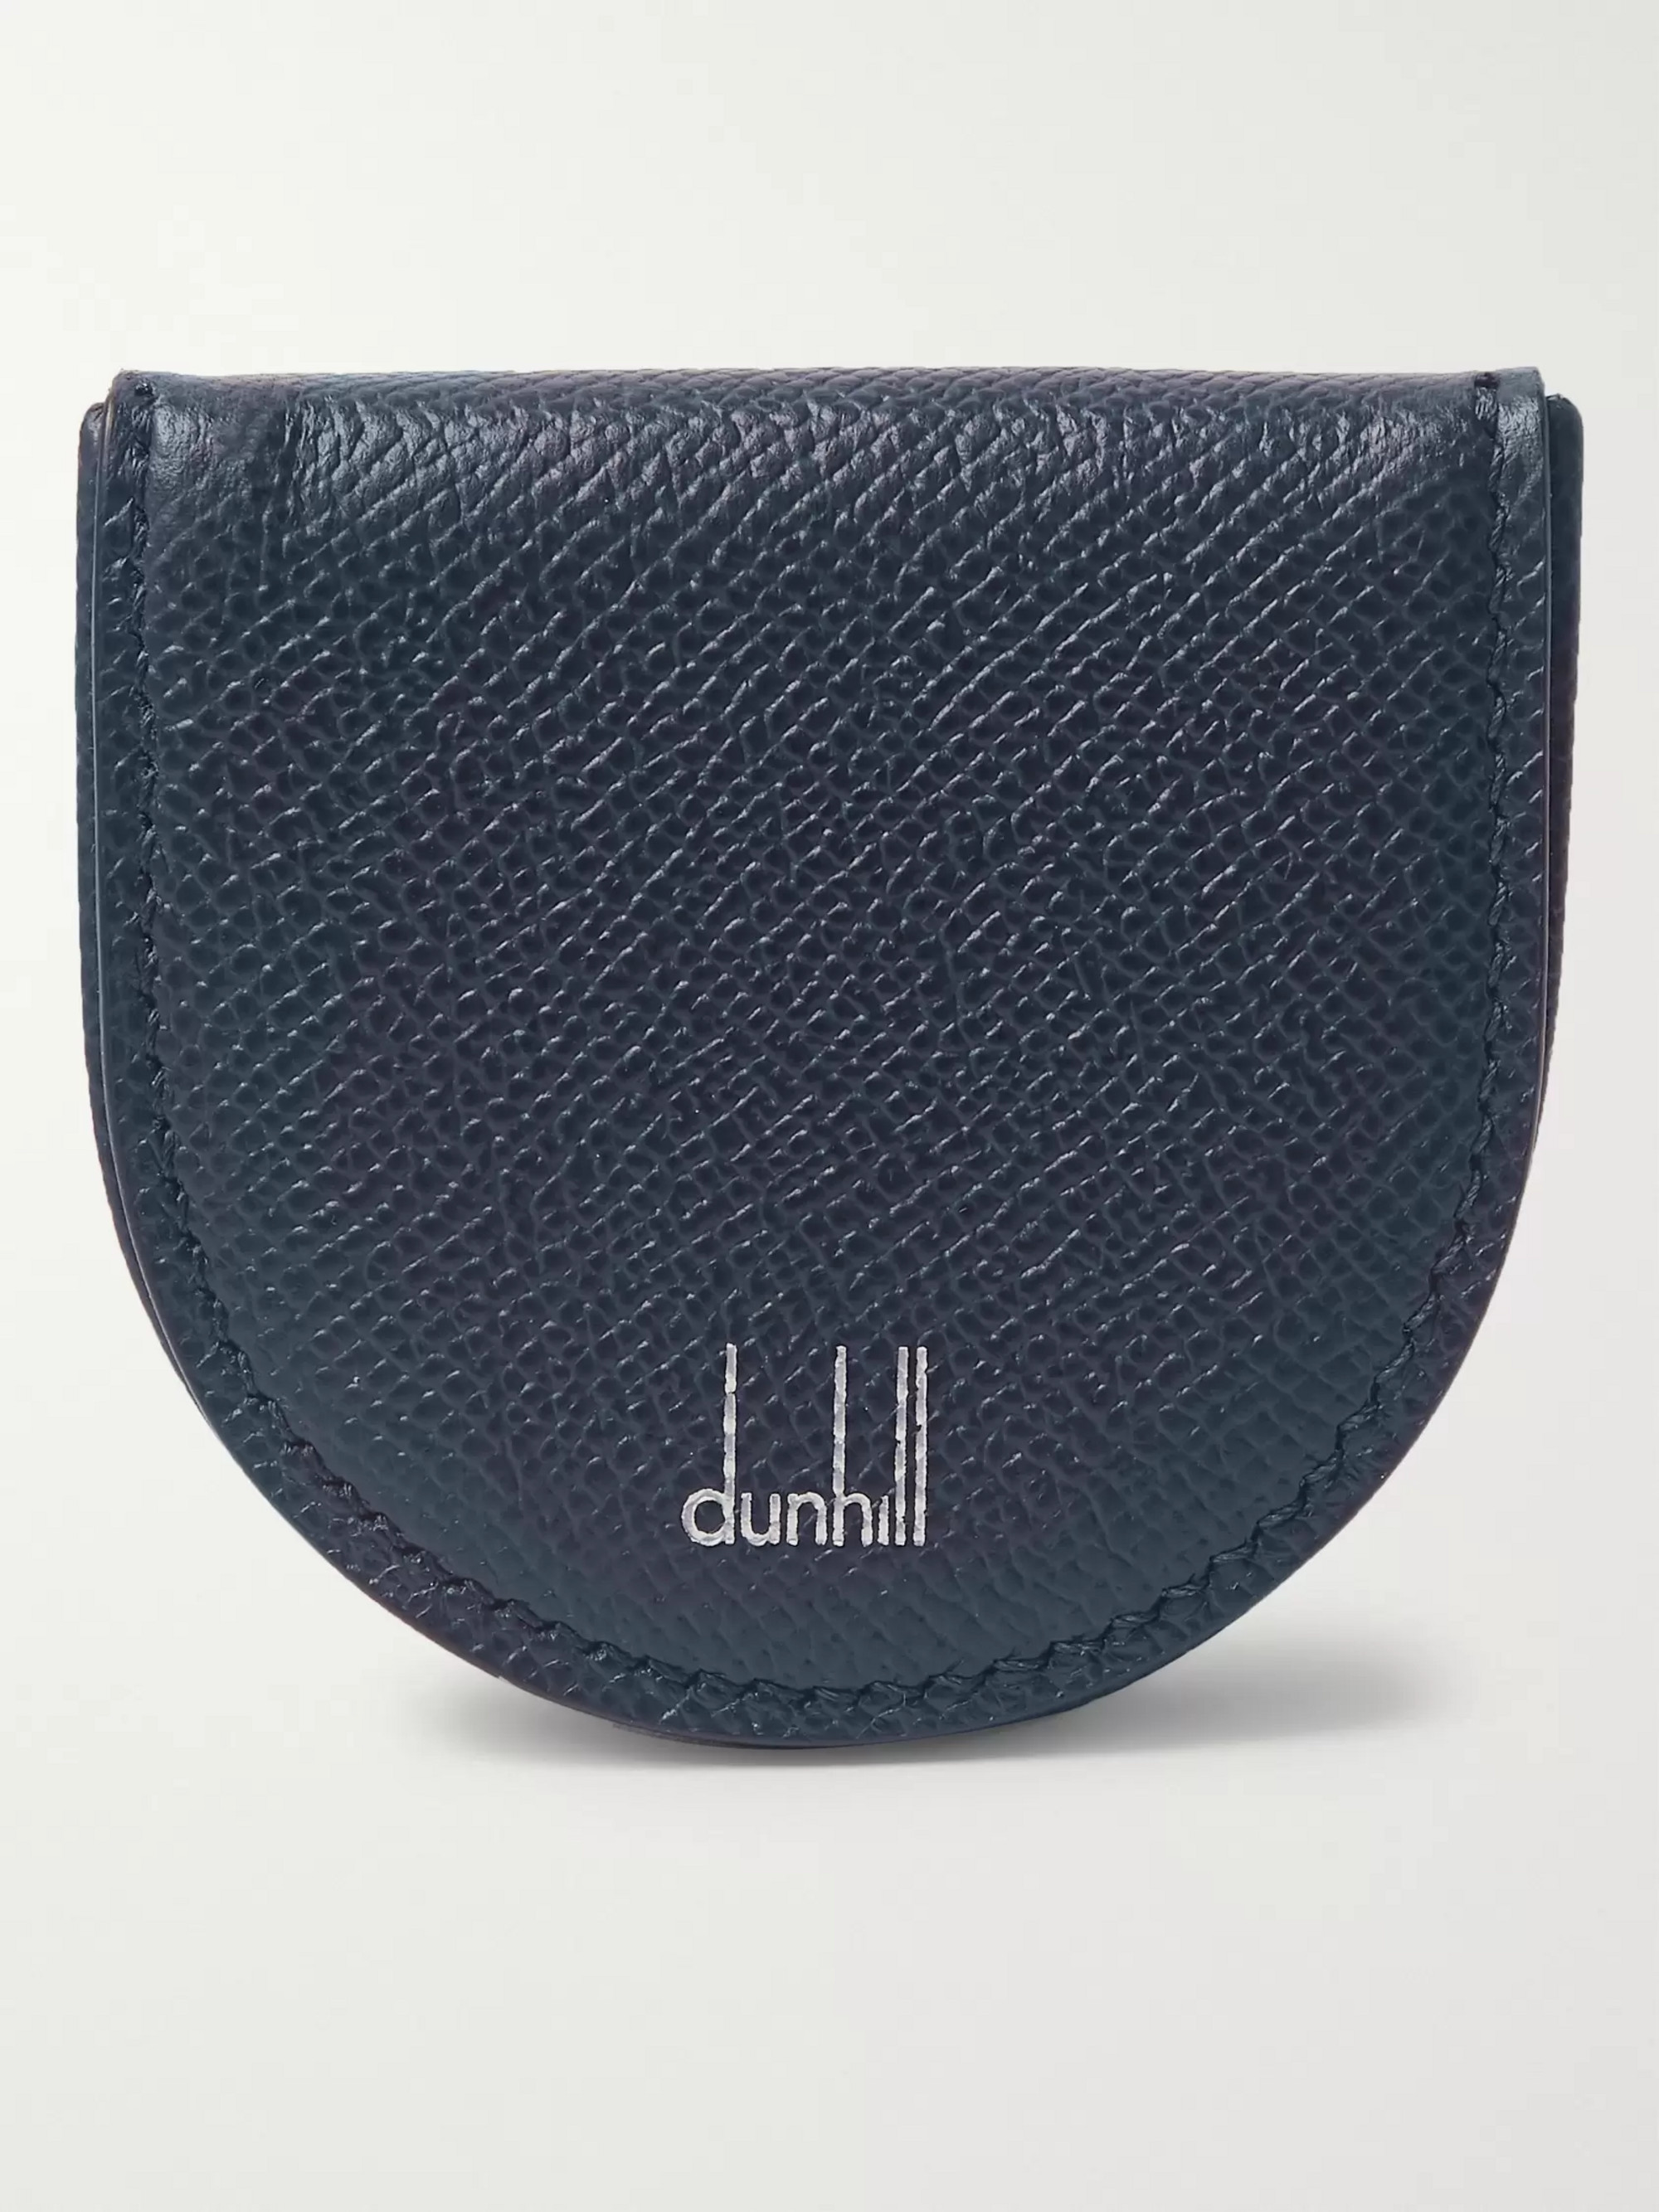 Dunhill Cadogan Full-Grain Leather Coin Case